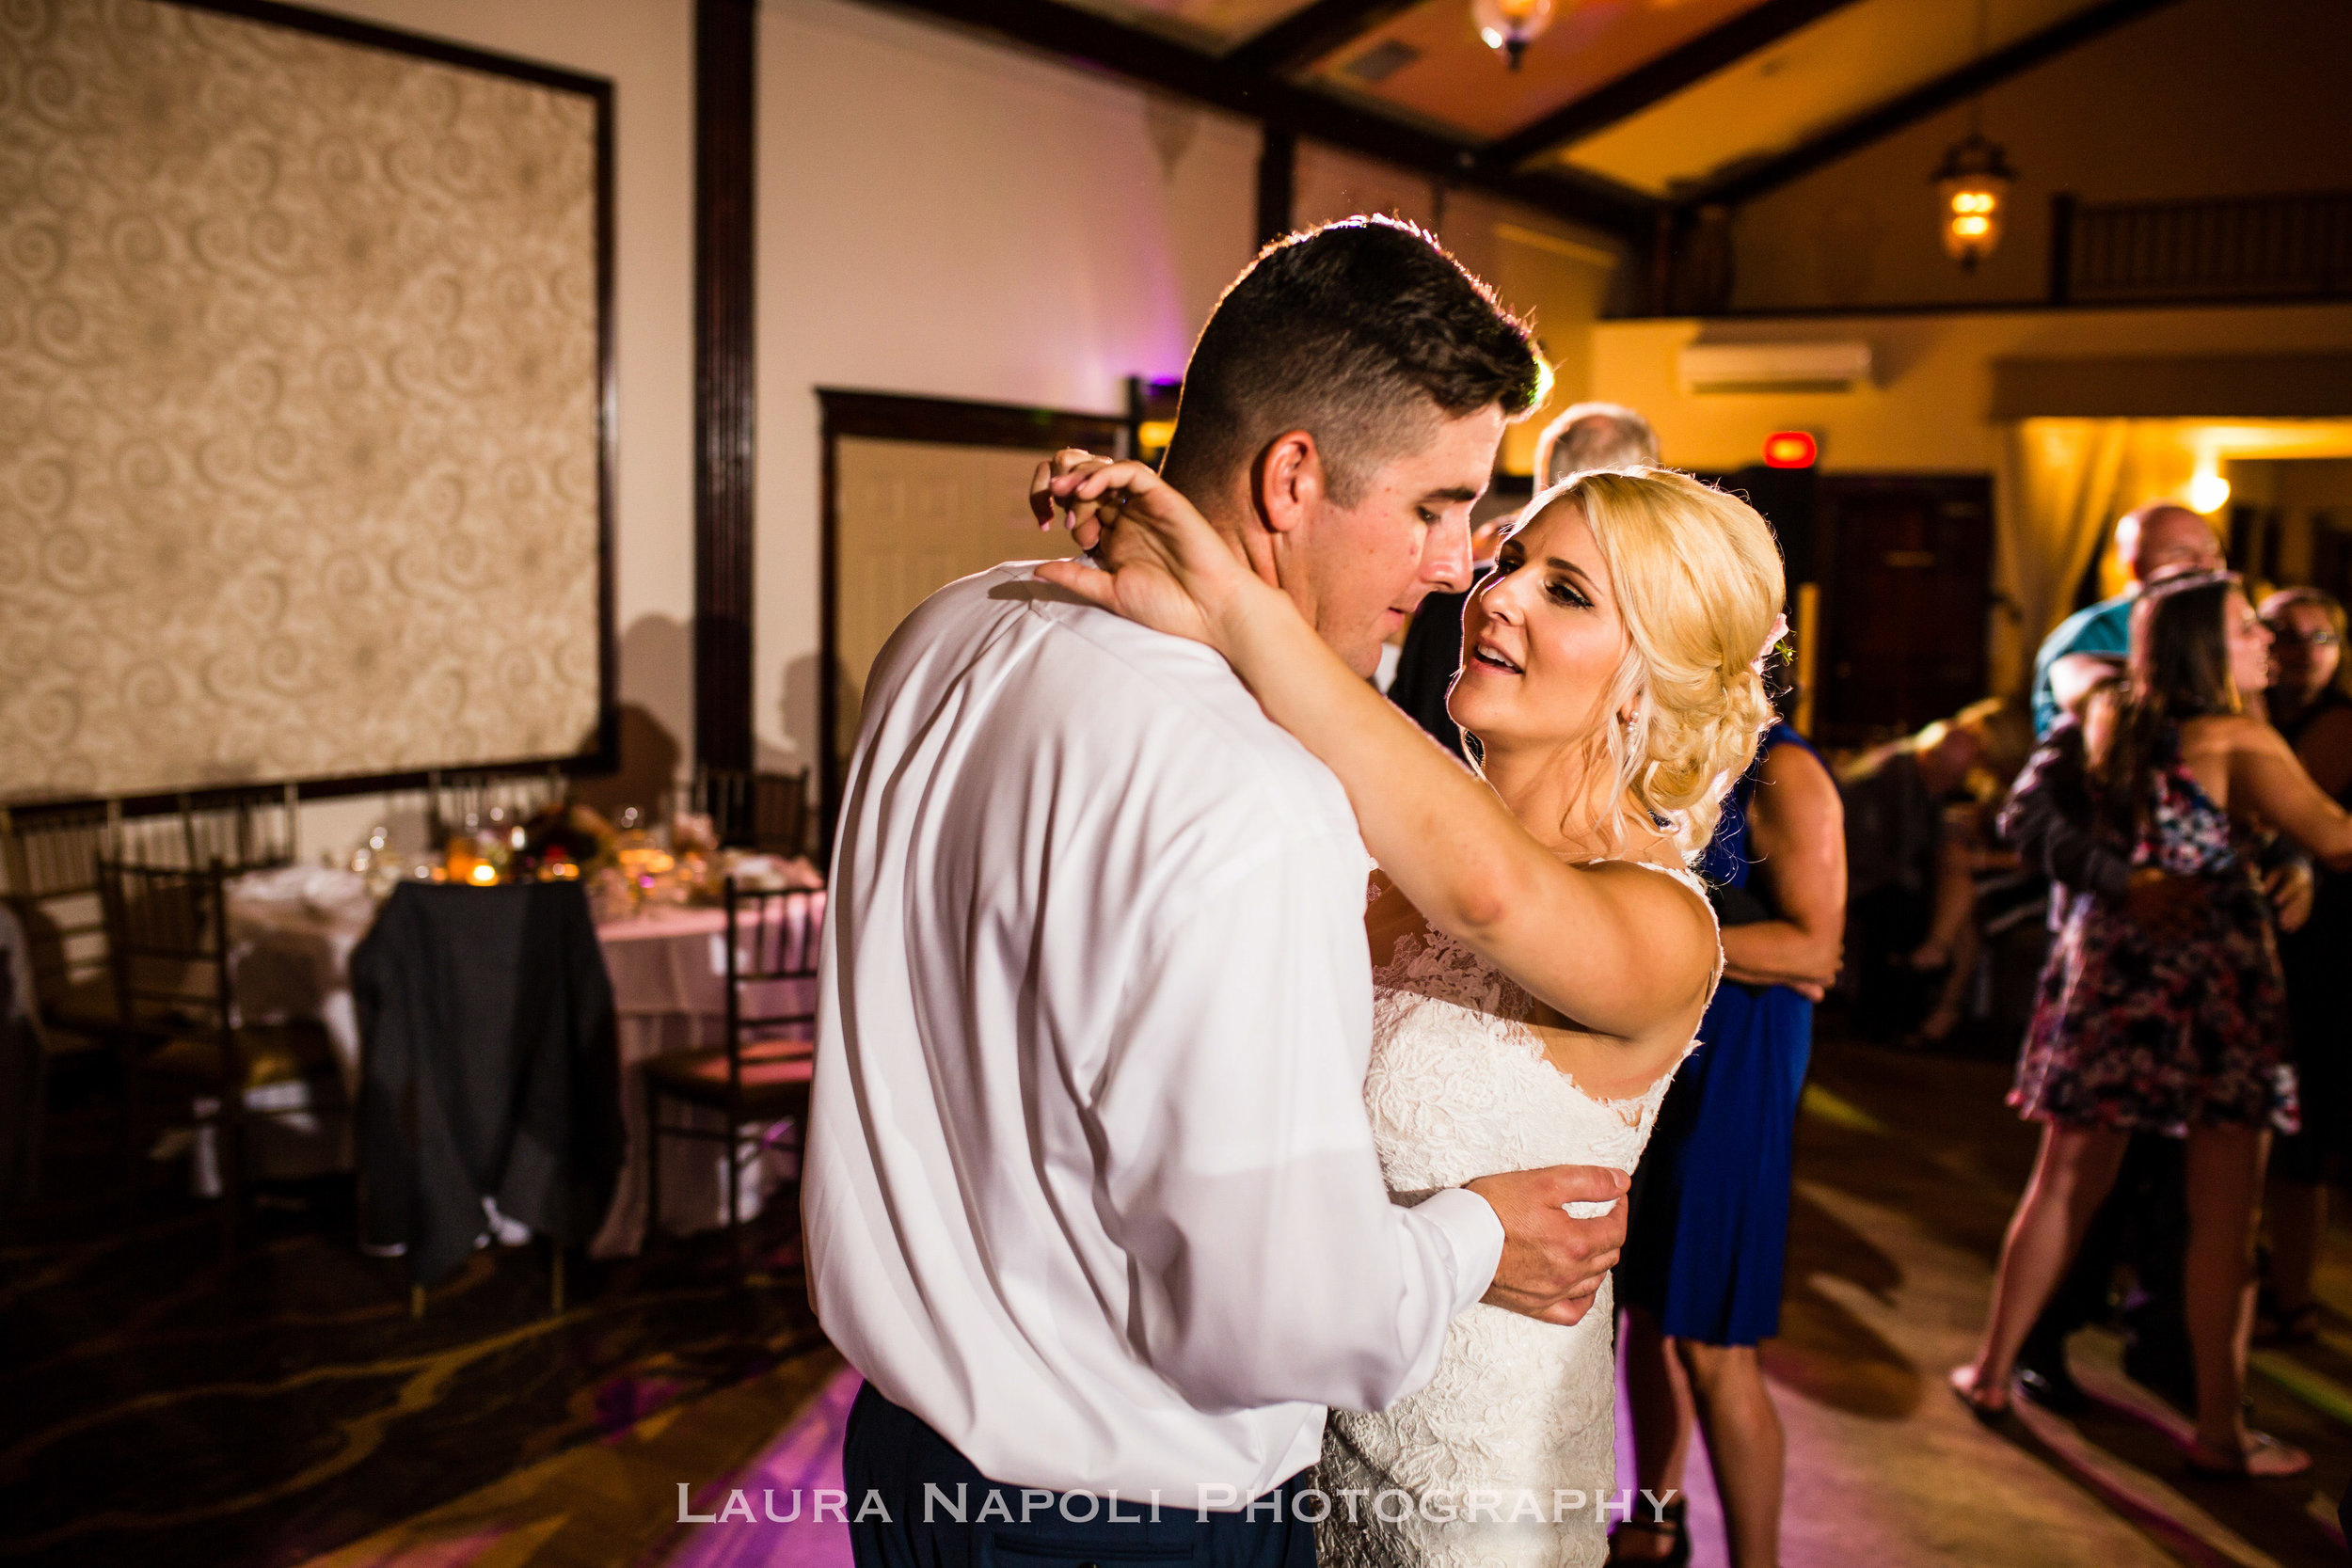 Runningdeergolfclubwedding-40.jpg